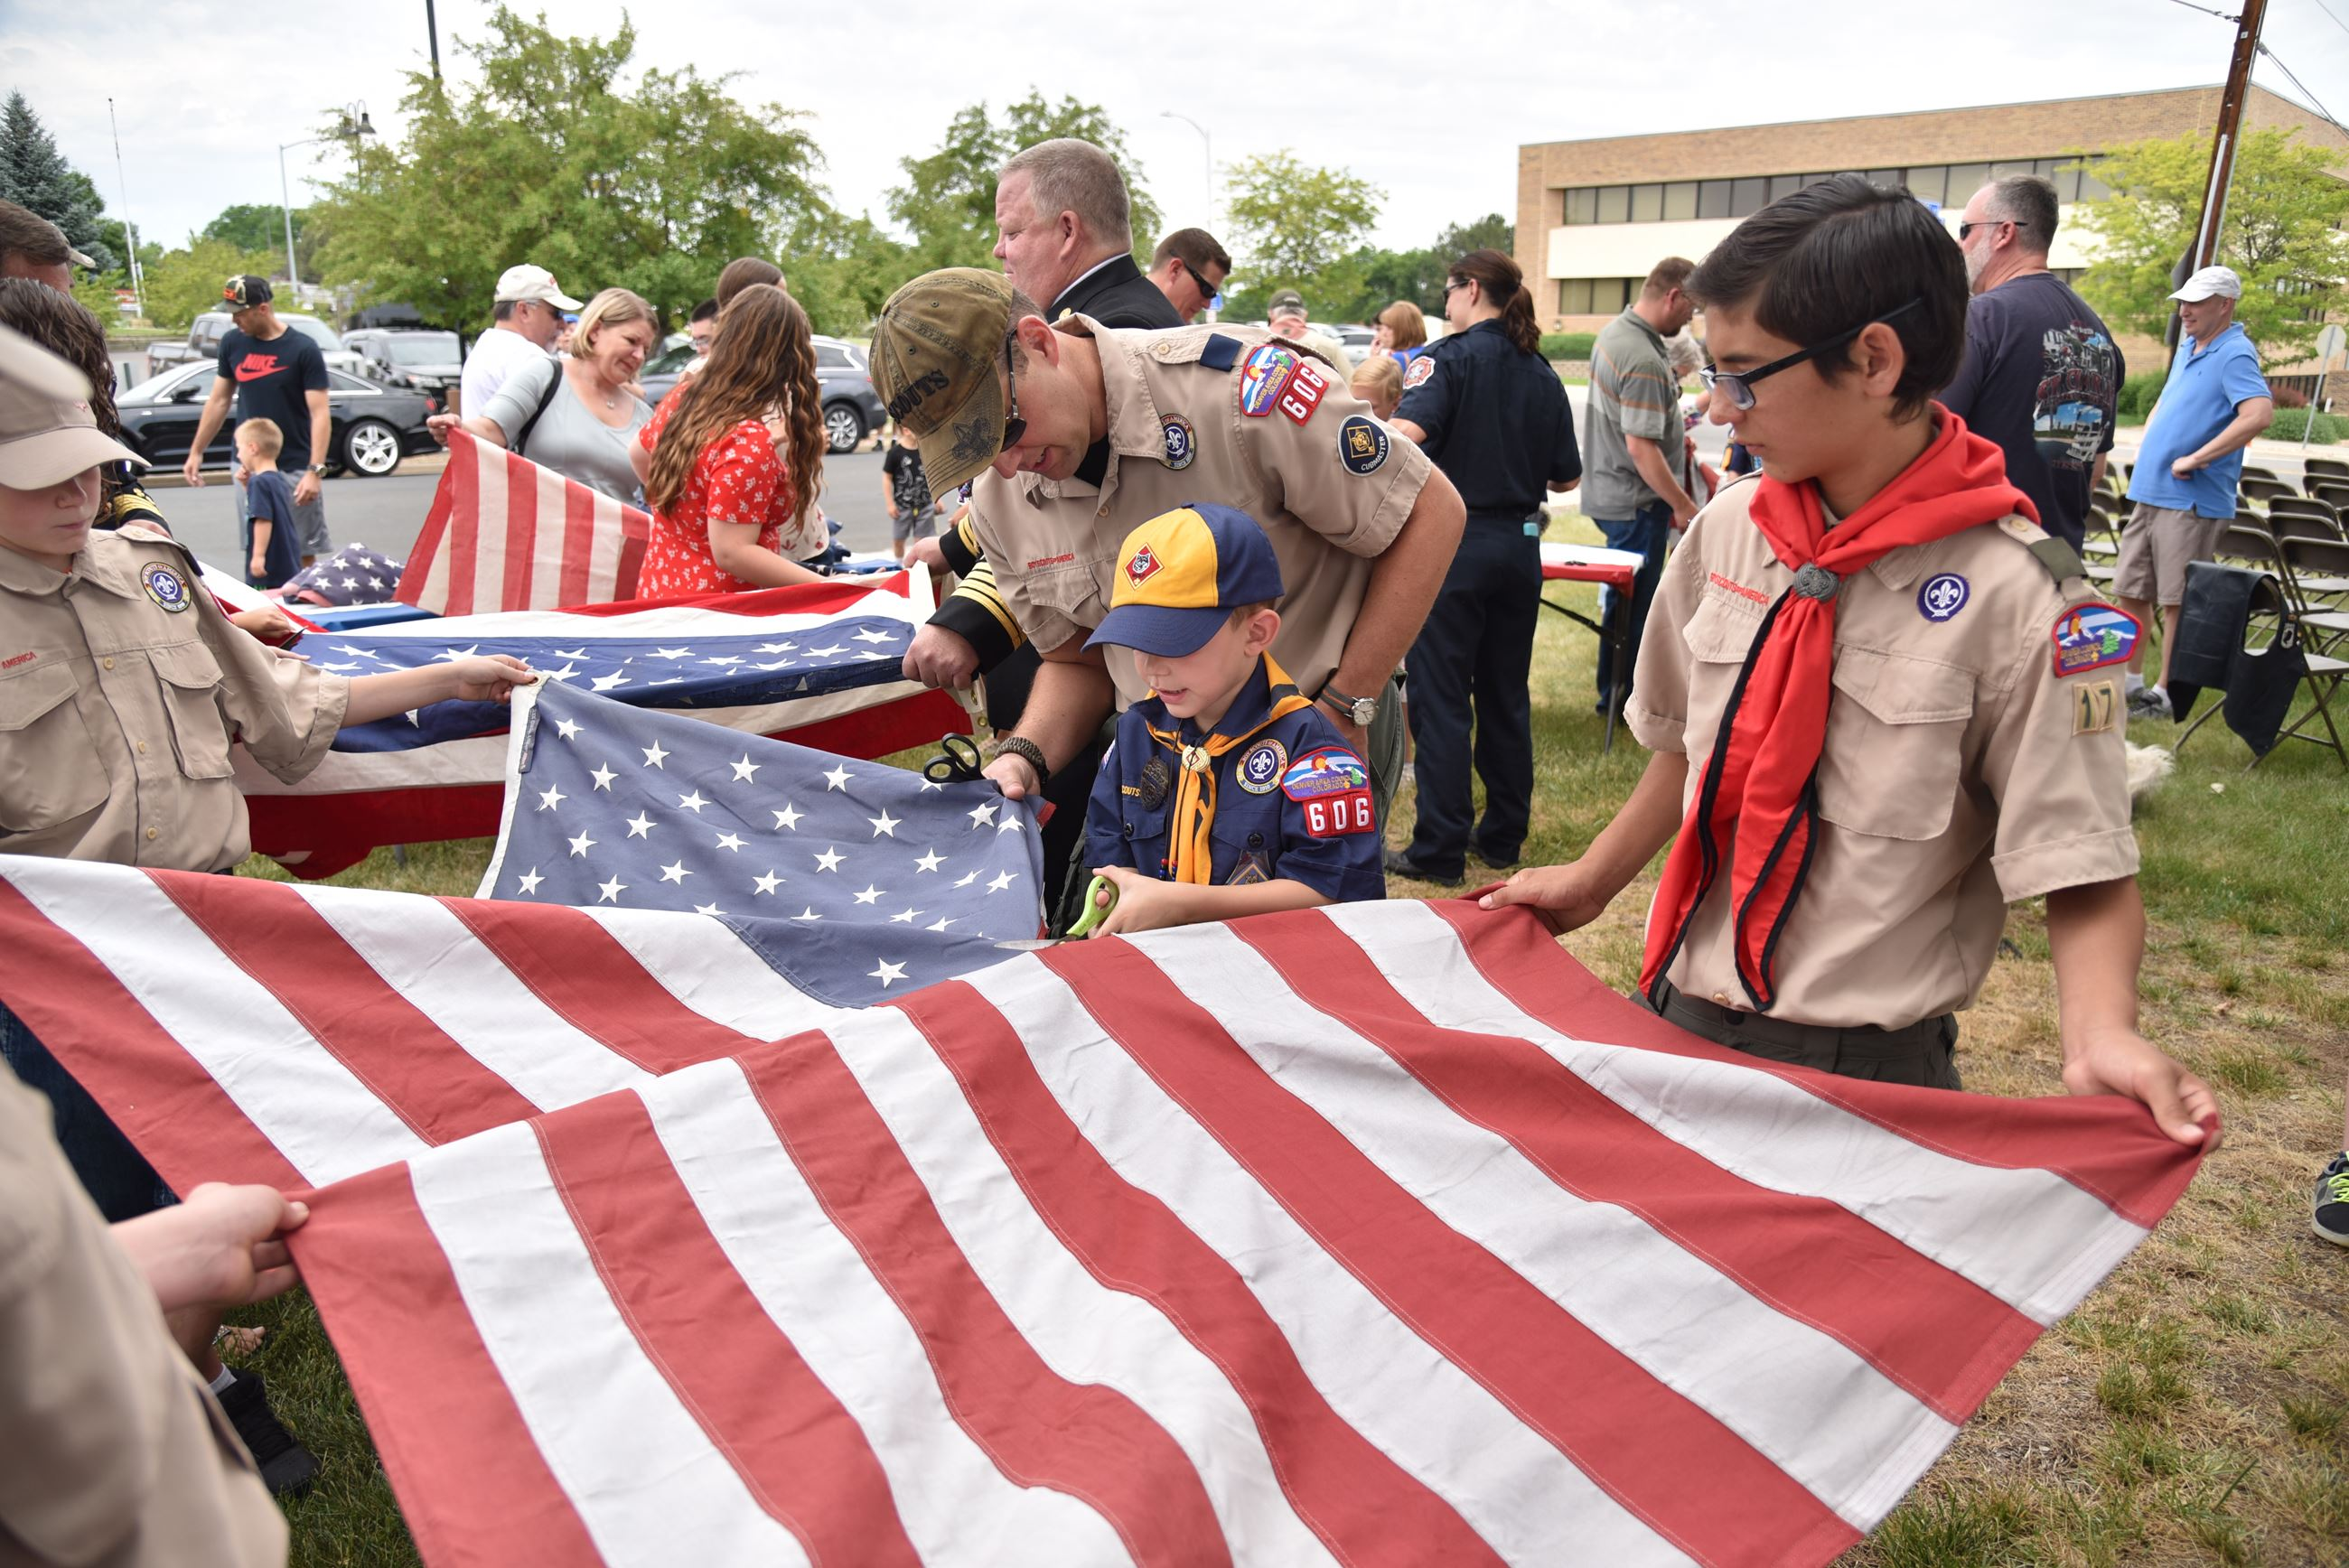 A group of Boy Scouts assist one another in cutting up the flag for proper retirement